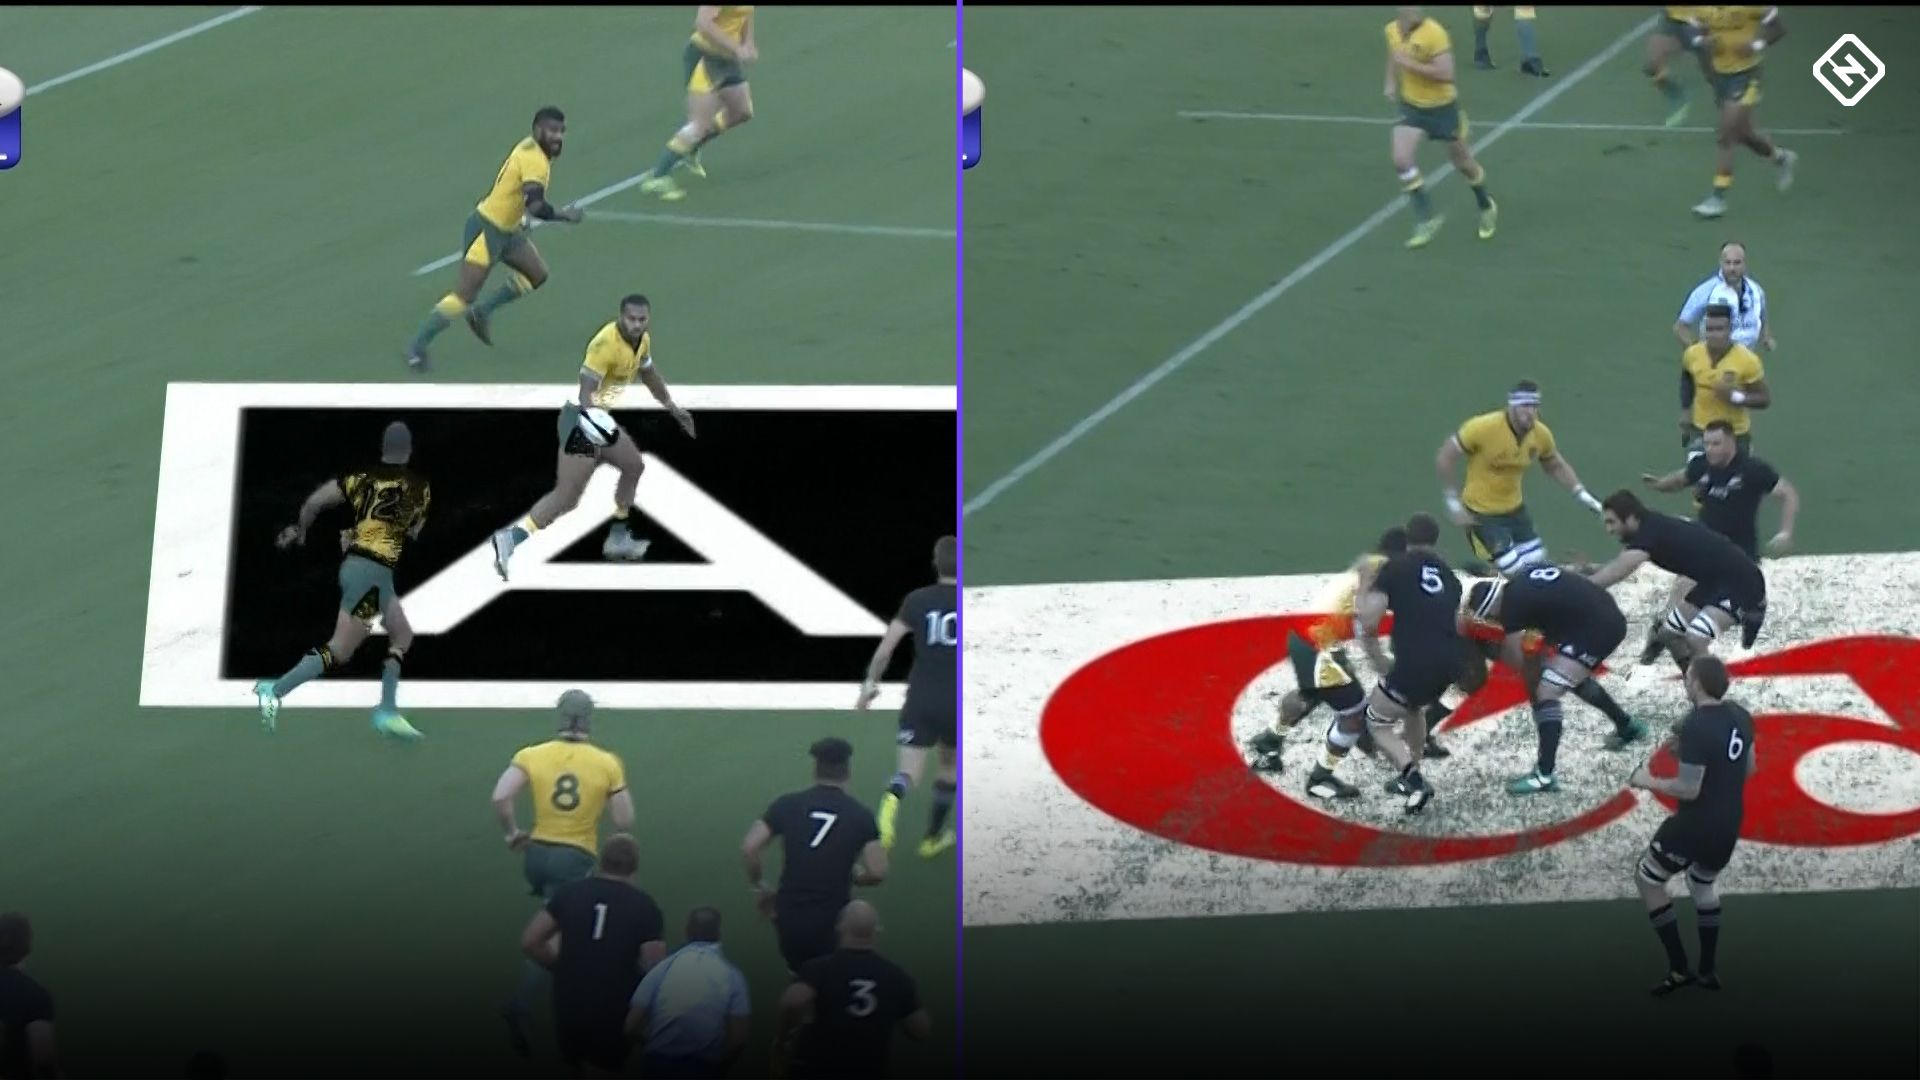 Bledisloe Cup 2018: 'Annoying' on-field advertising causes major distraction for television viewers